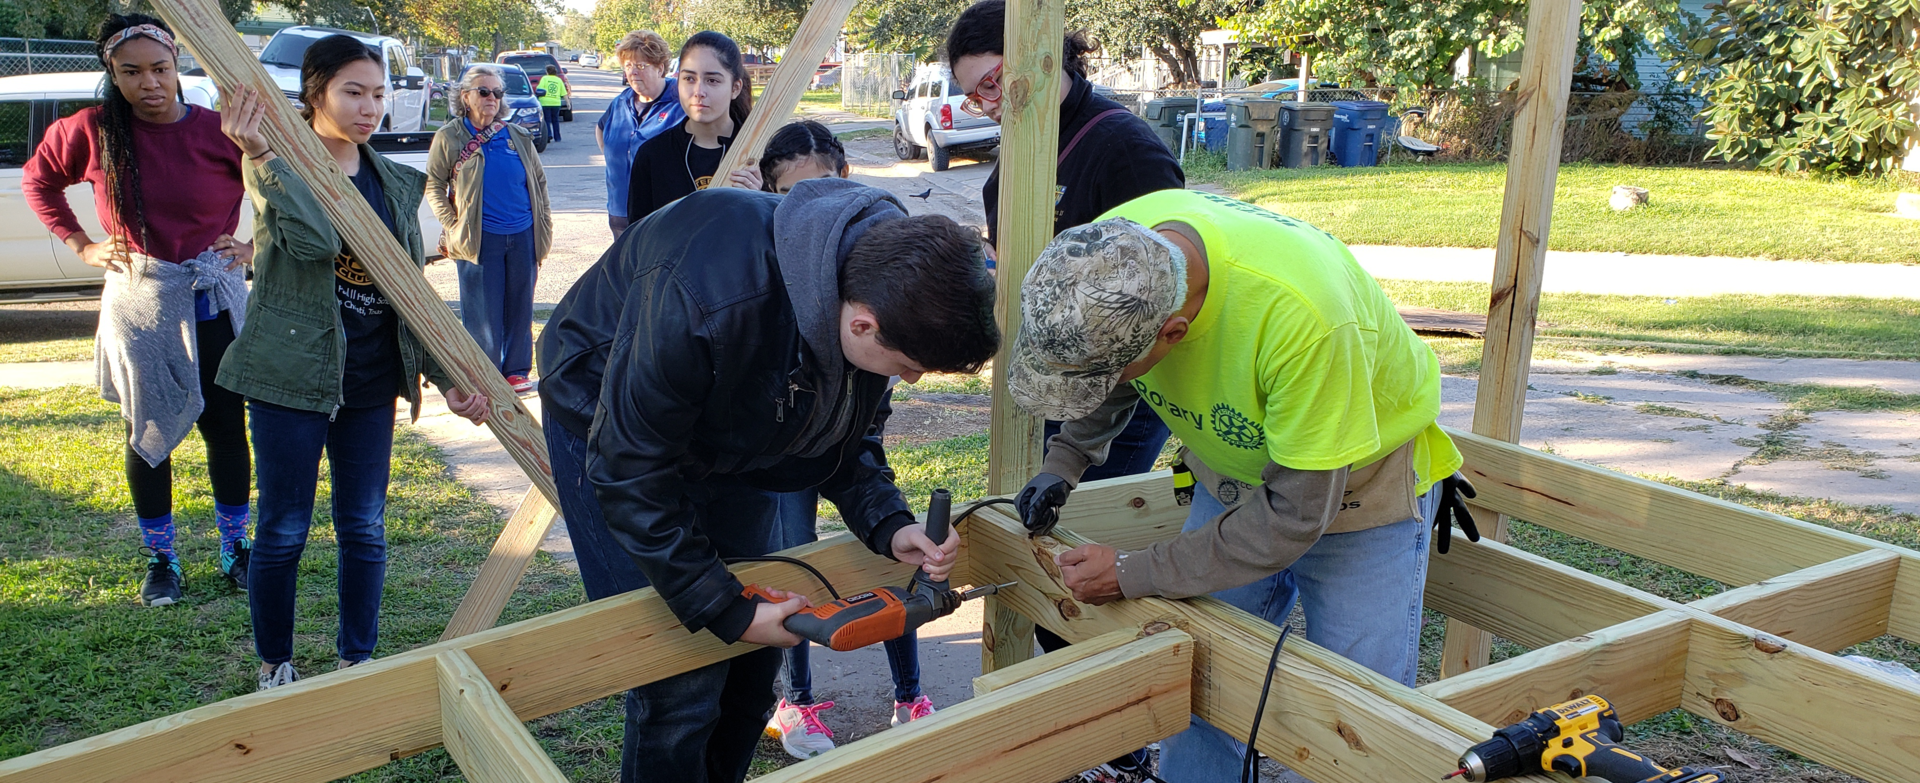 Rotary Club help building a ramp for local family